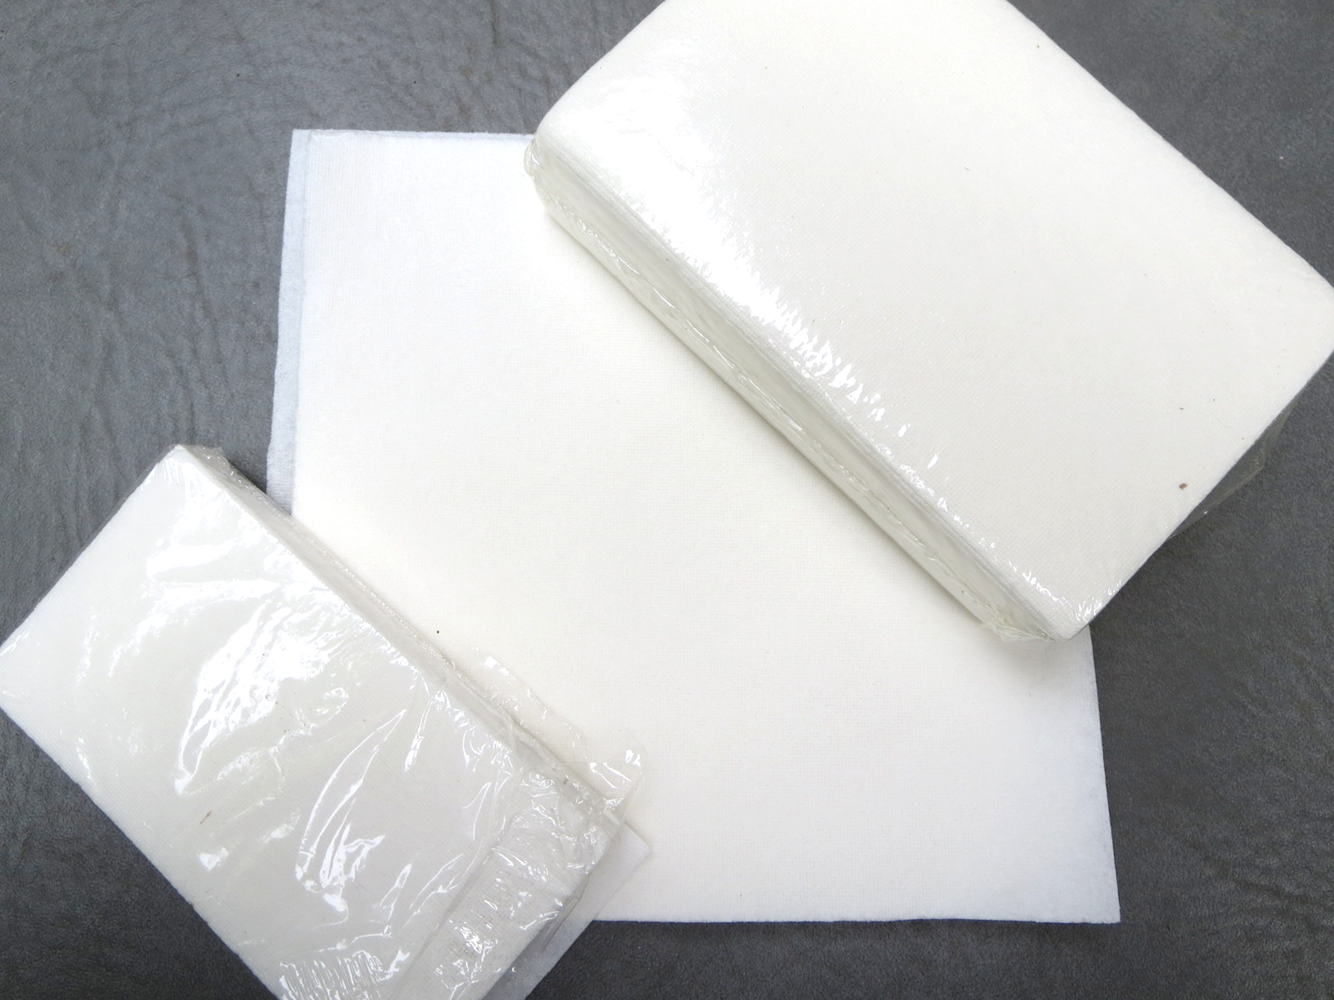 #02-01282CG02 DriMop® Medical Liquid Absorber/Solidifier Laminated Paper Sheets - 12` x 12`